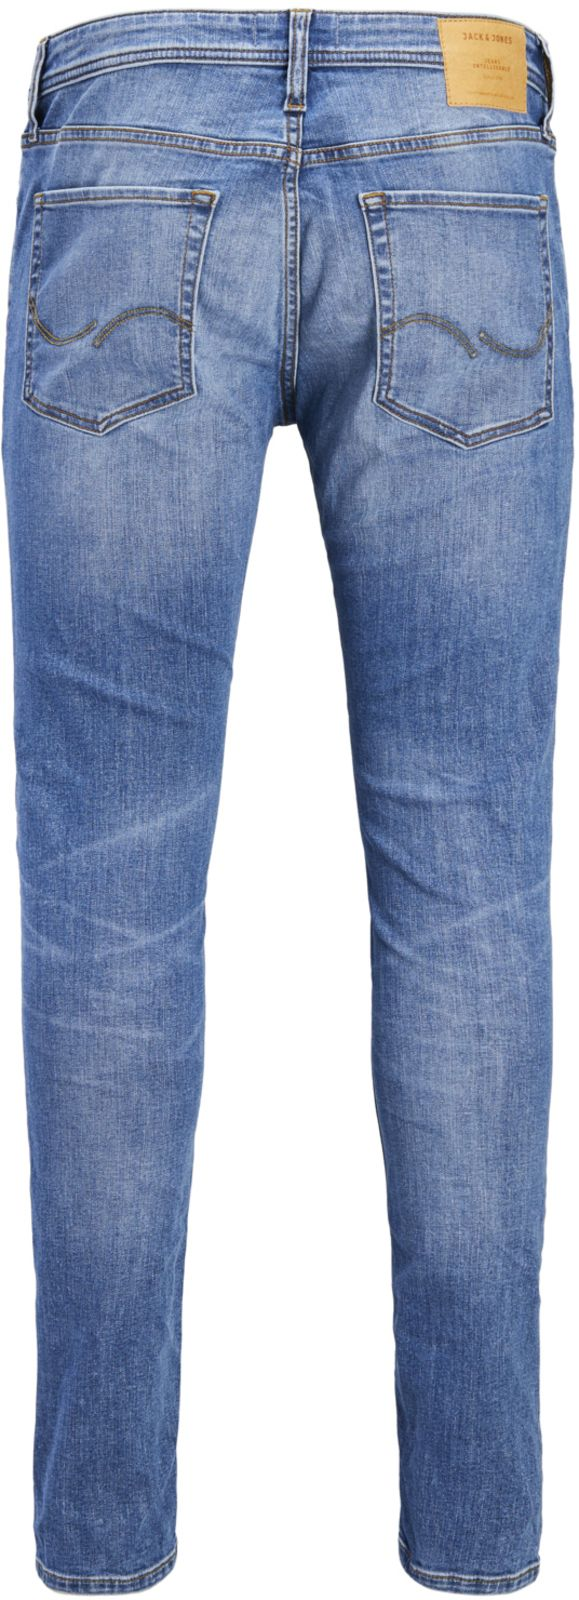 Jack & Jones Liam 815 Denim Jeans Blue